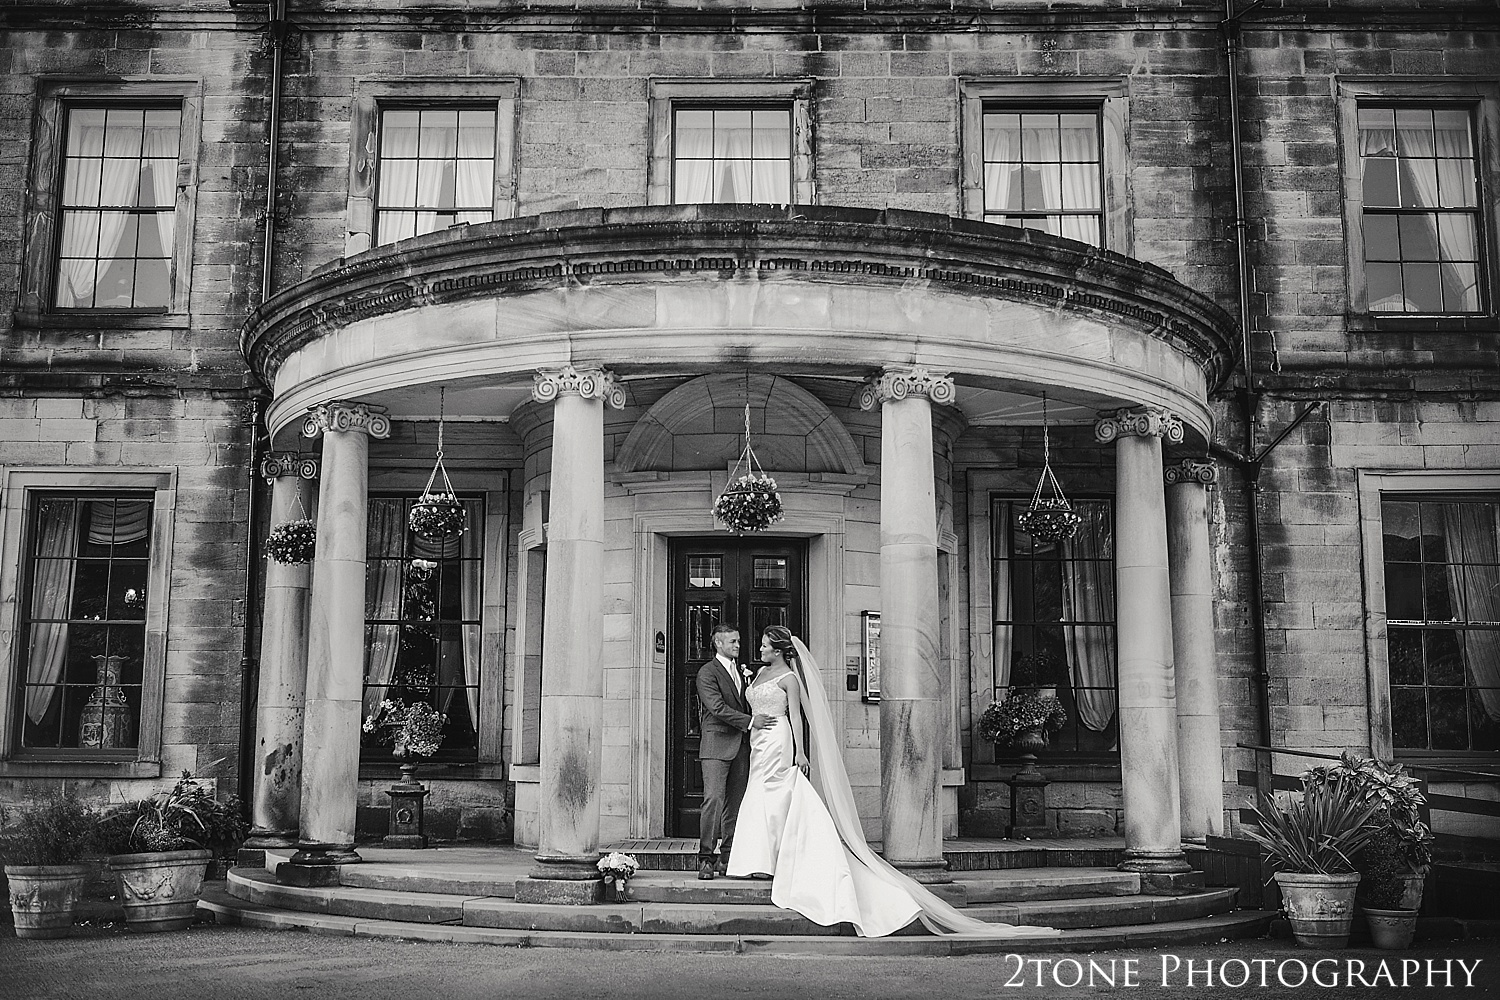 Beamish Hall wedding photography by durham based husband and wife wedding photography duo 2tone Photography www.2tonephotography.co.uk